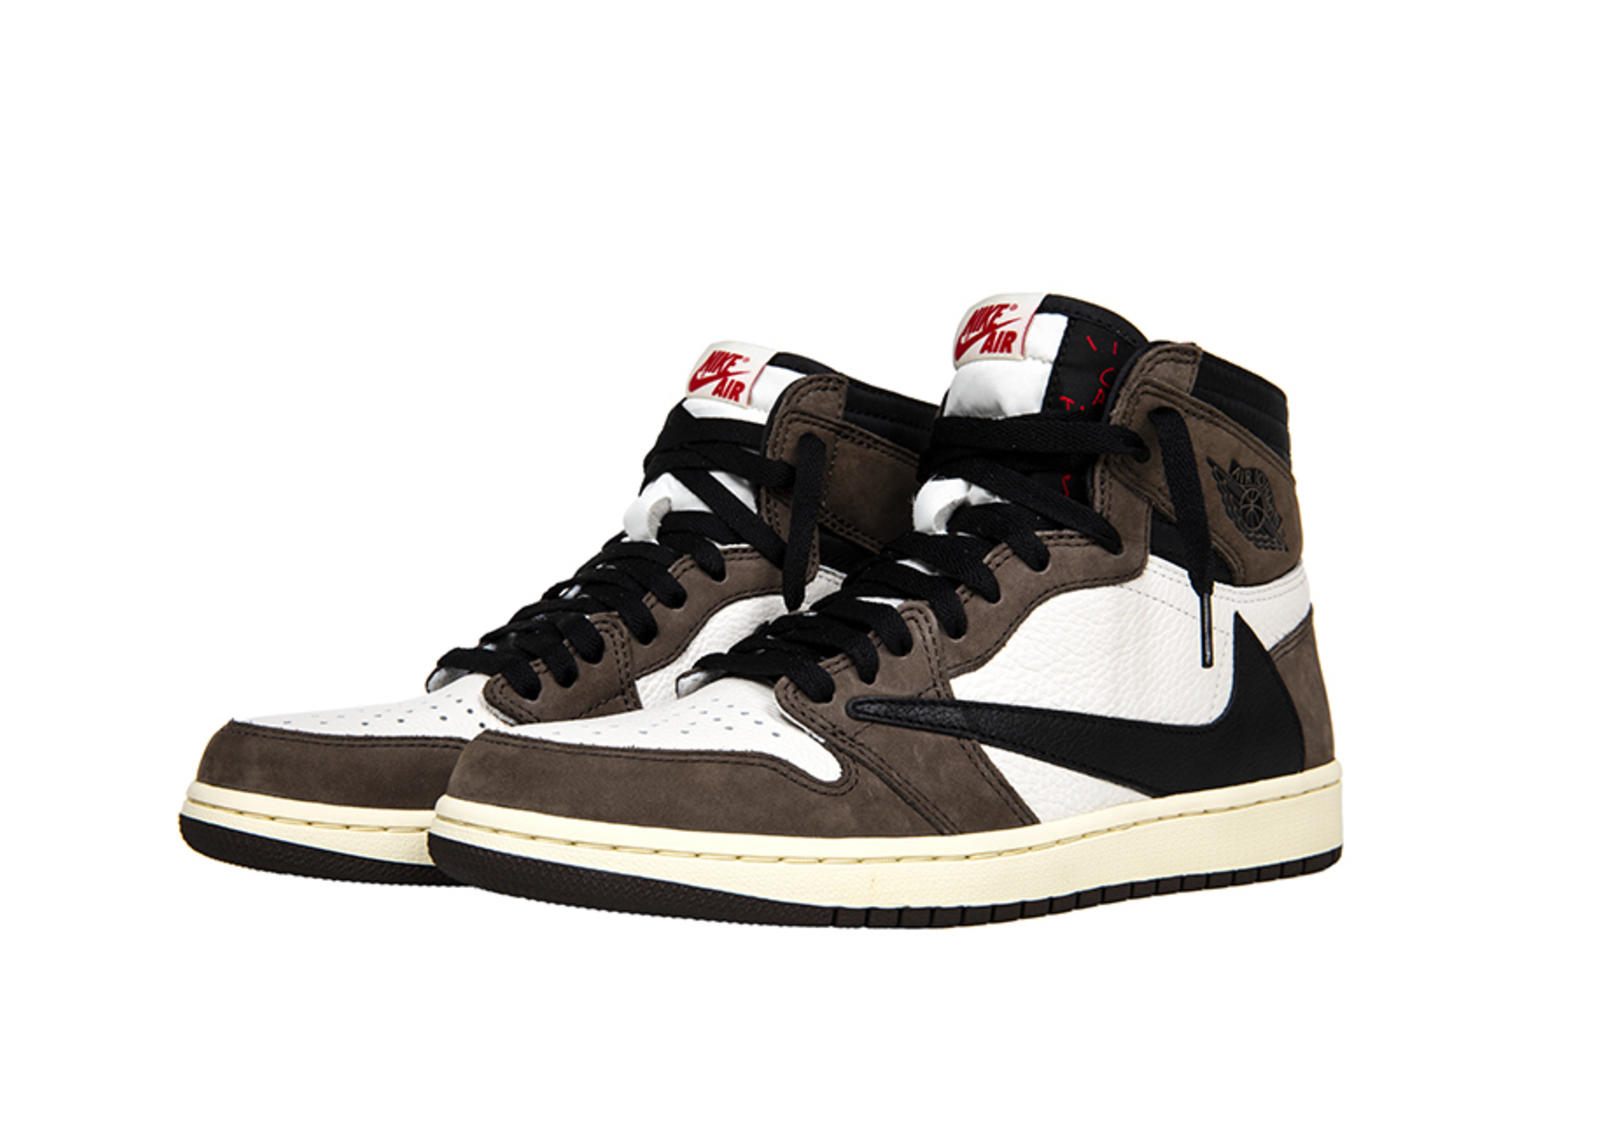 Travis Scott Air Jordan I High OG and Apparel Collection Official Images and Release Date 23